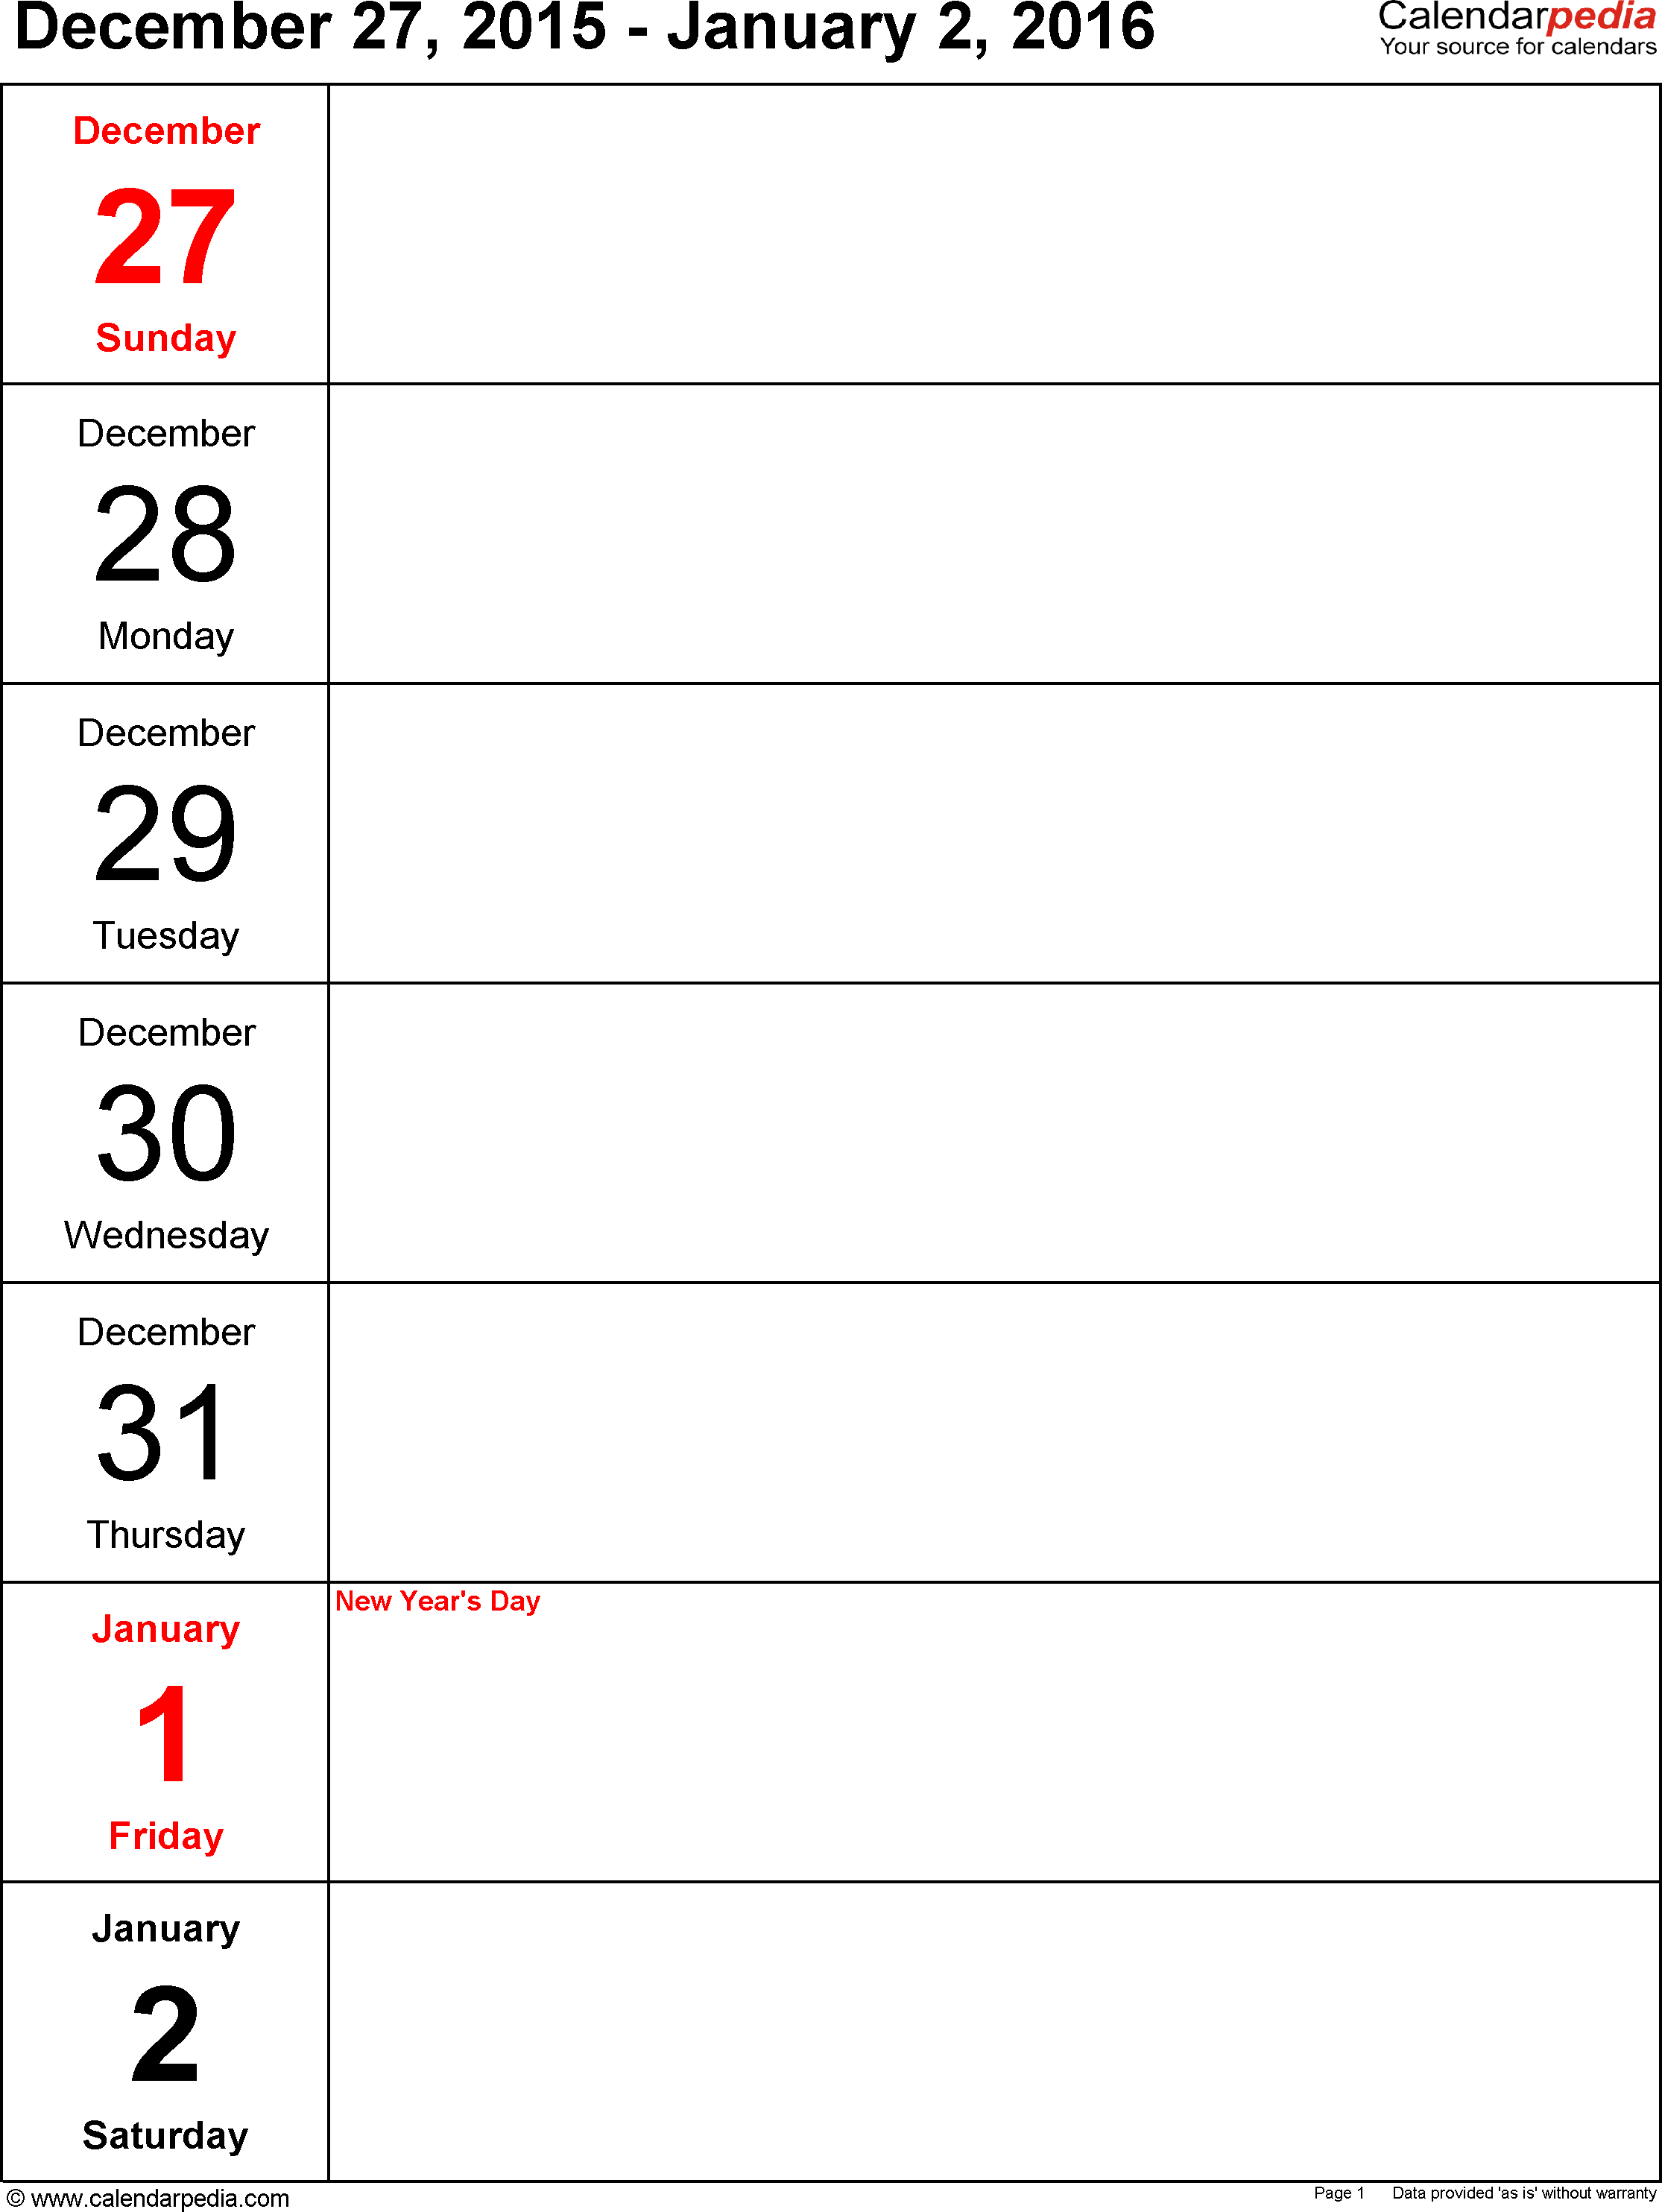 Weekly calendar 2016: template for Excel version 10, portrait, 53 pages, days vertically, great for a weekly diary